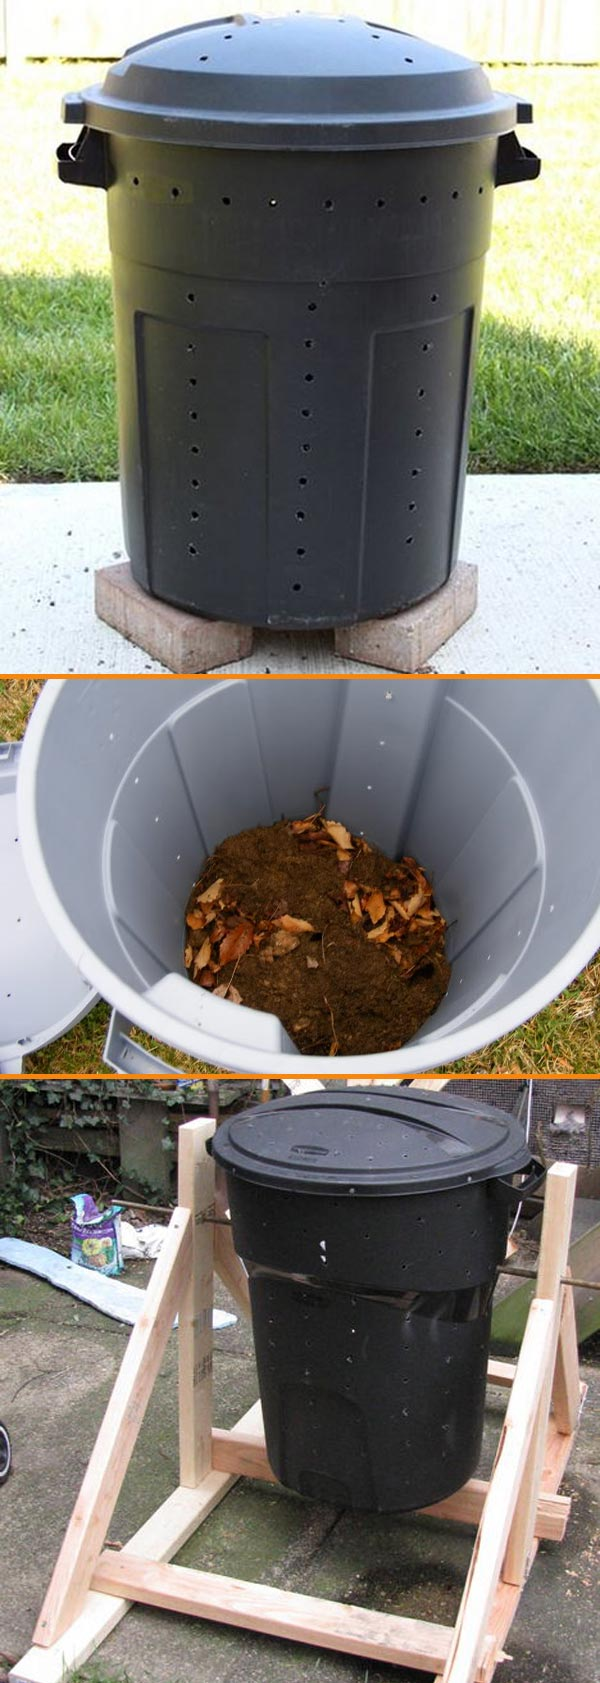 DIY Compost Bin from a Garbage Can